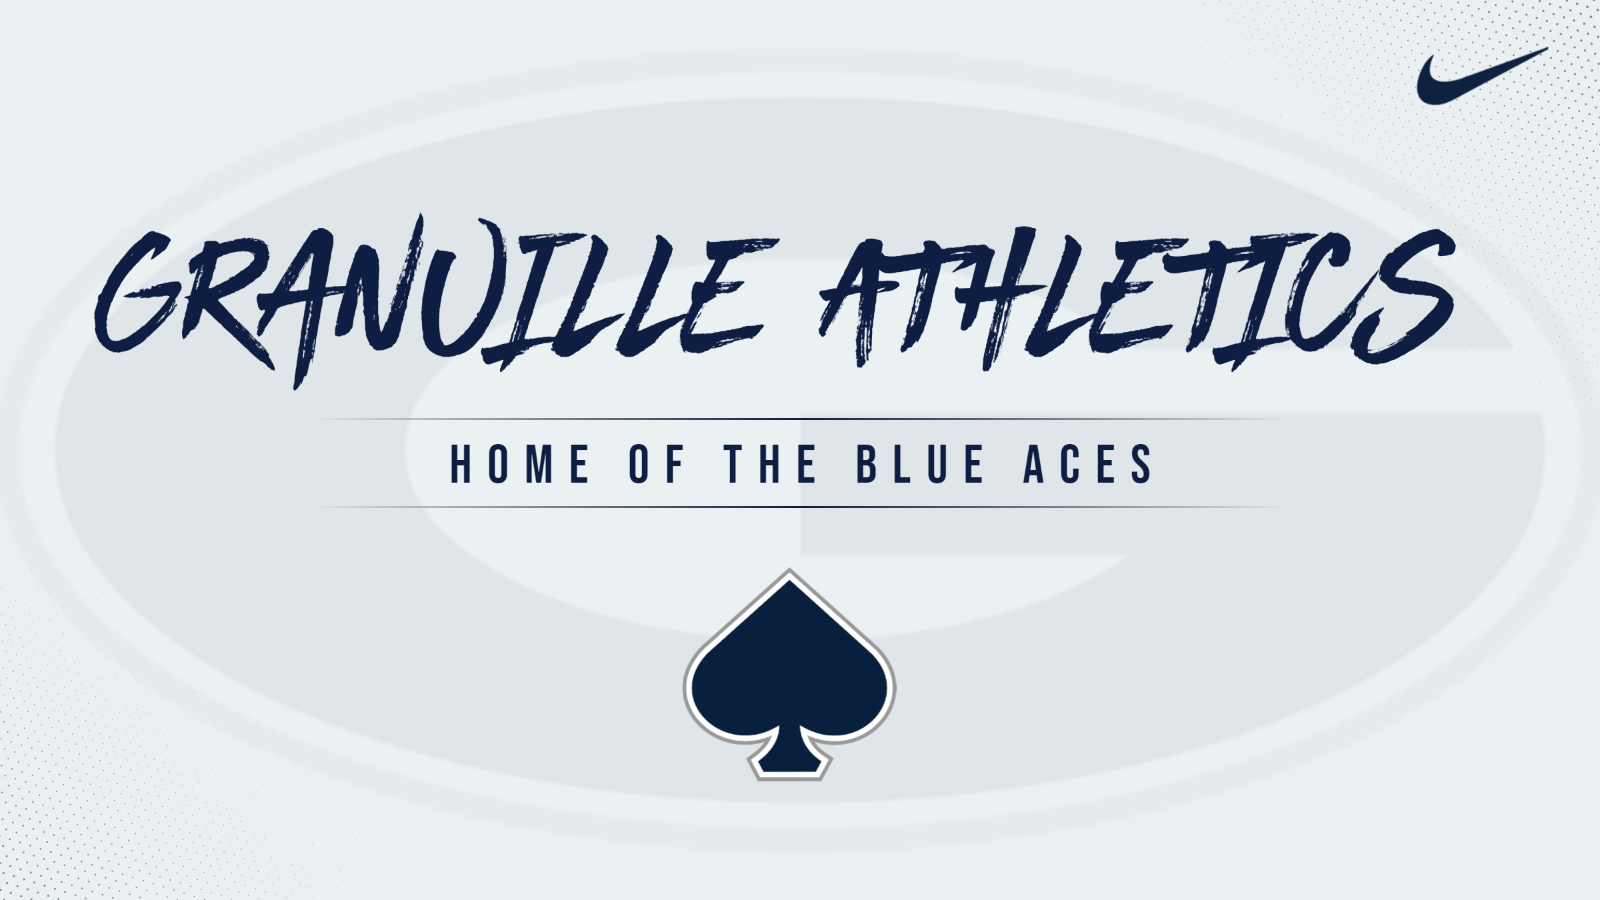 Welcome to the New Home of Granville Athletics!